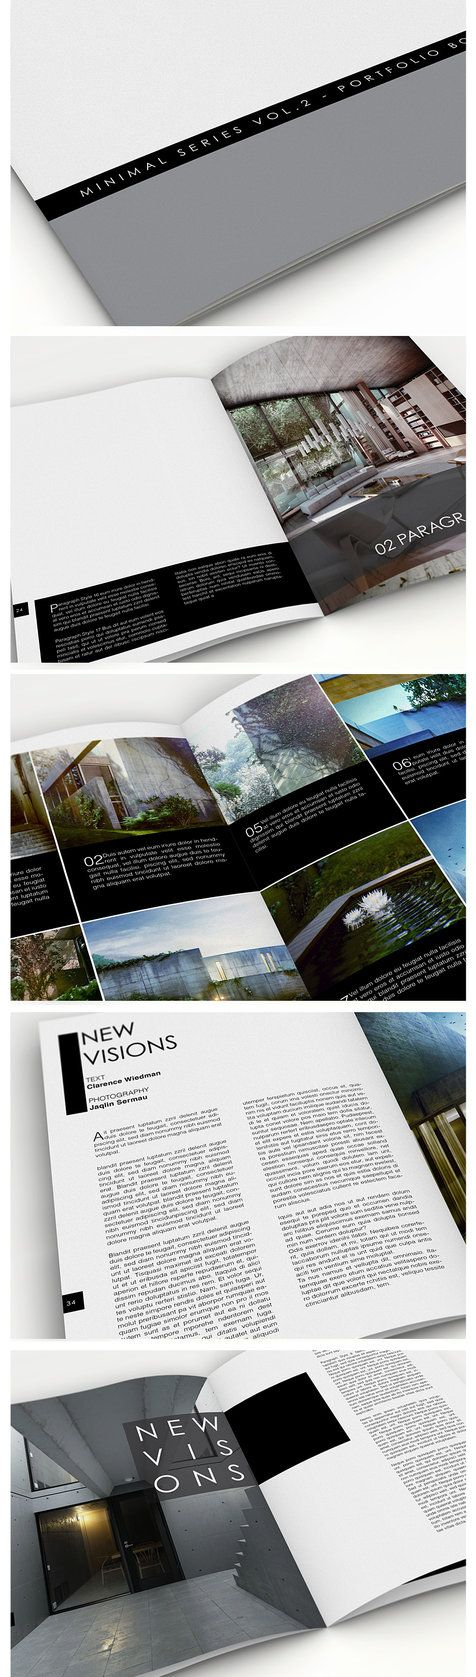 Portfolio Book Vol 2 A4 Indesign Template By Anderworks